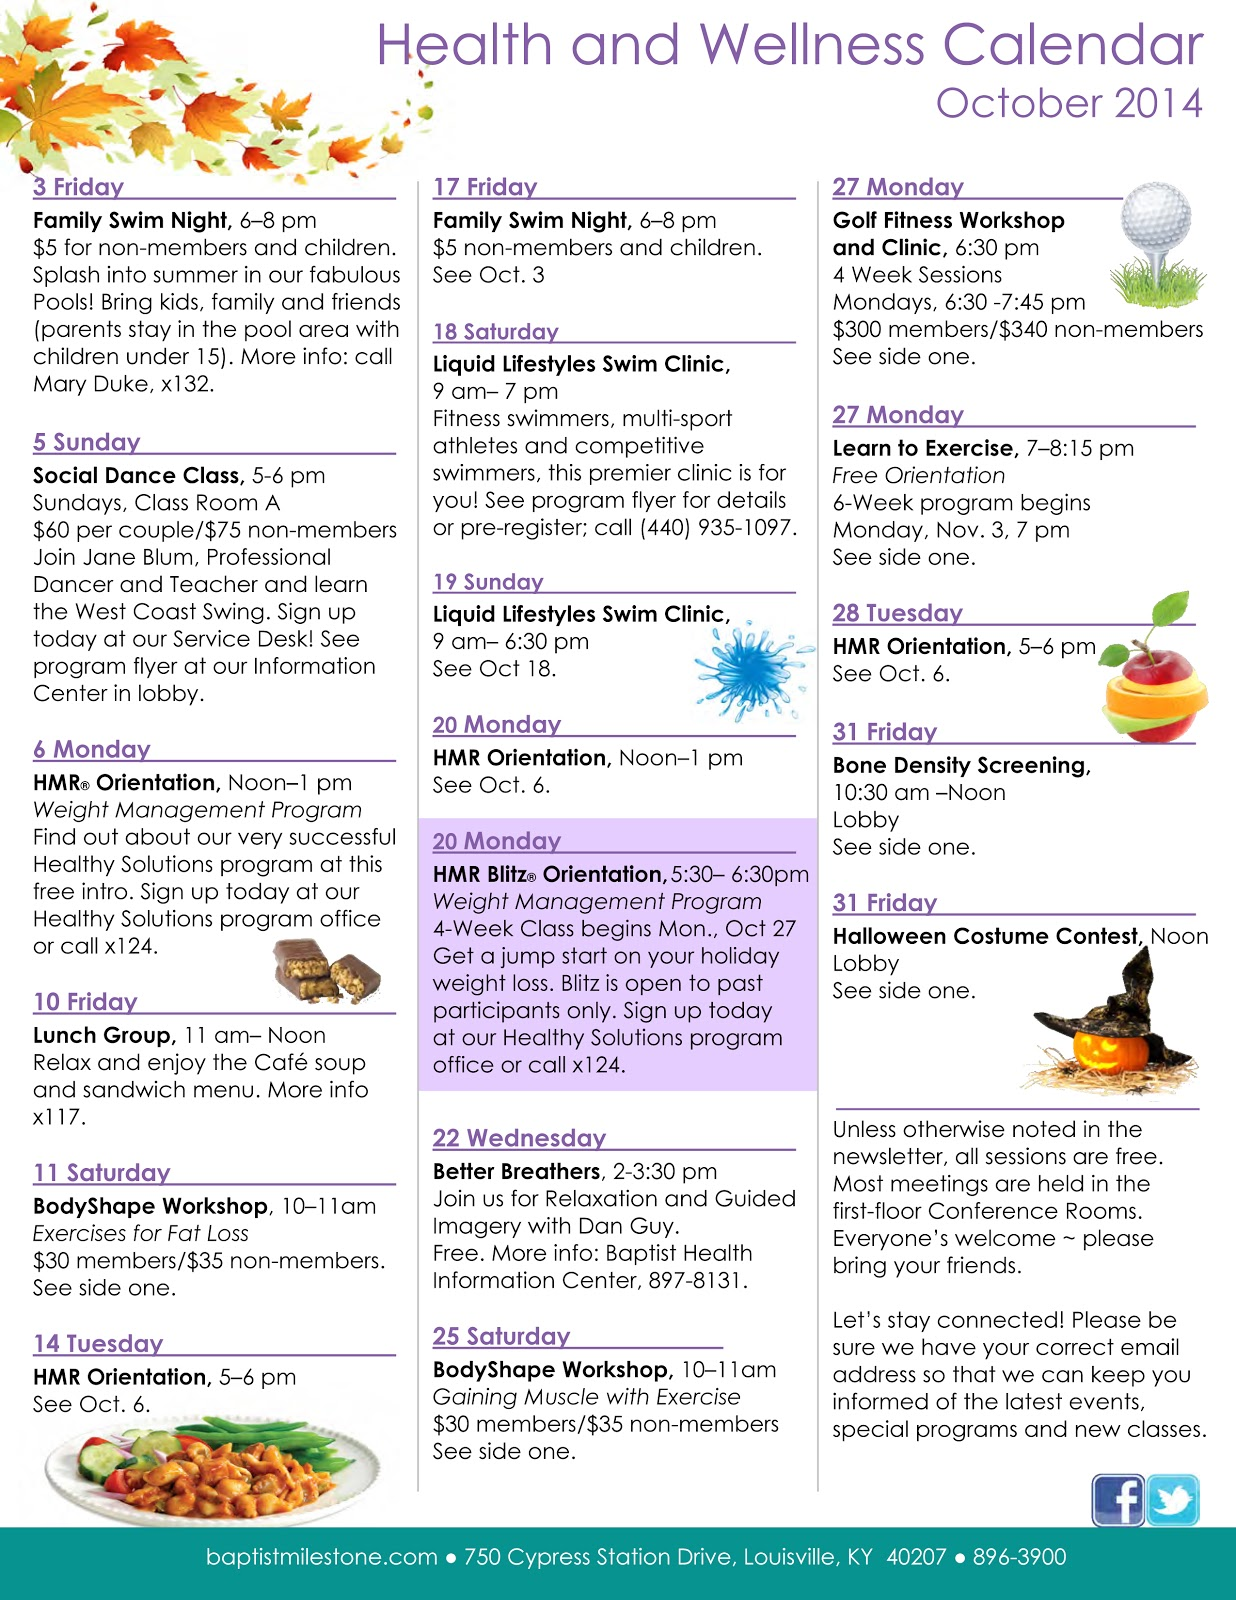 Health and Wellness Calendar